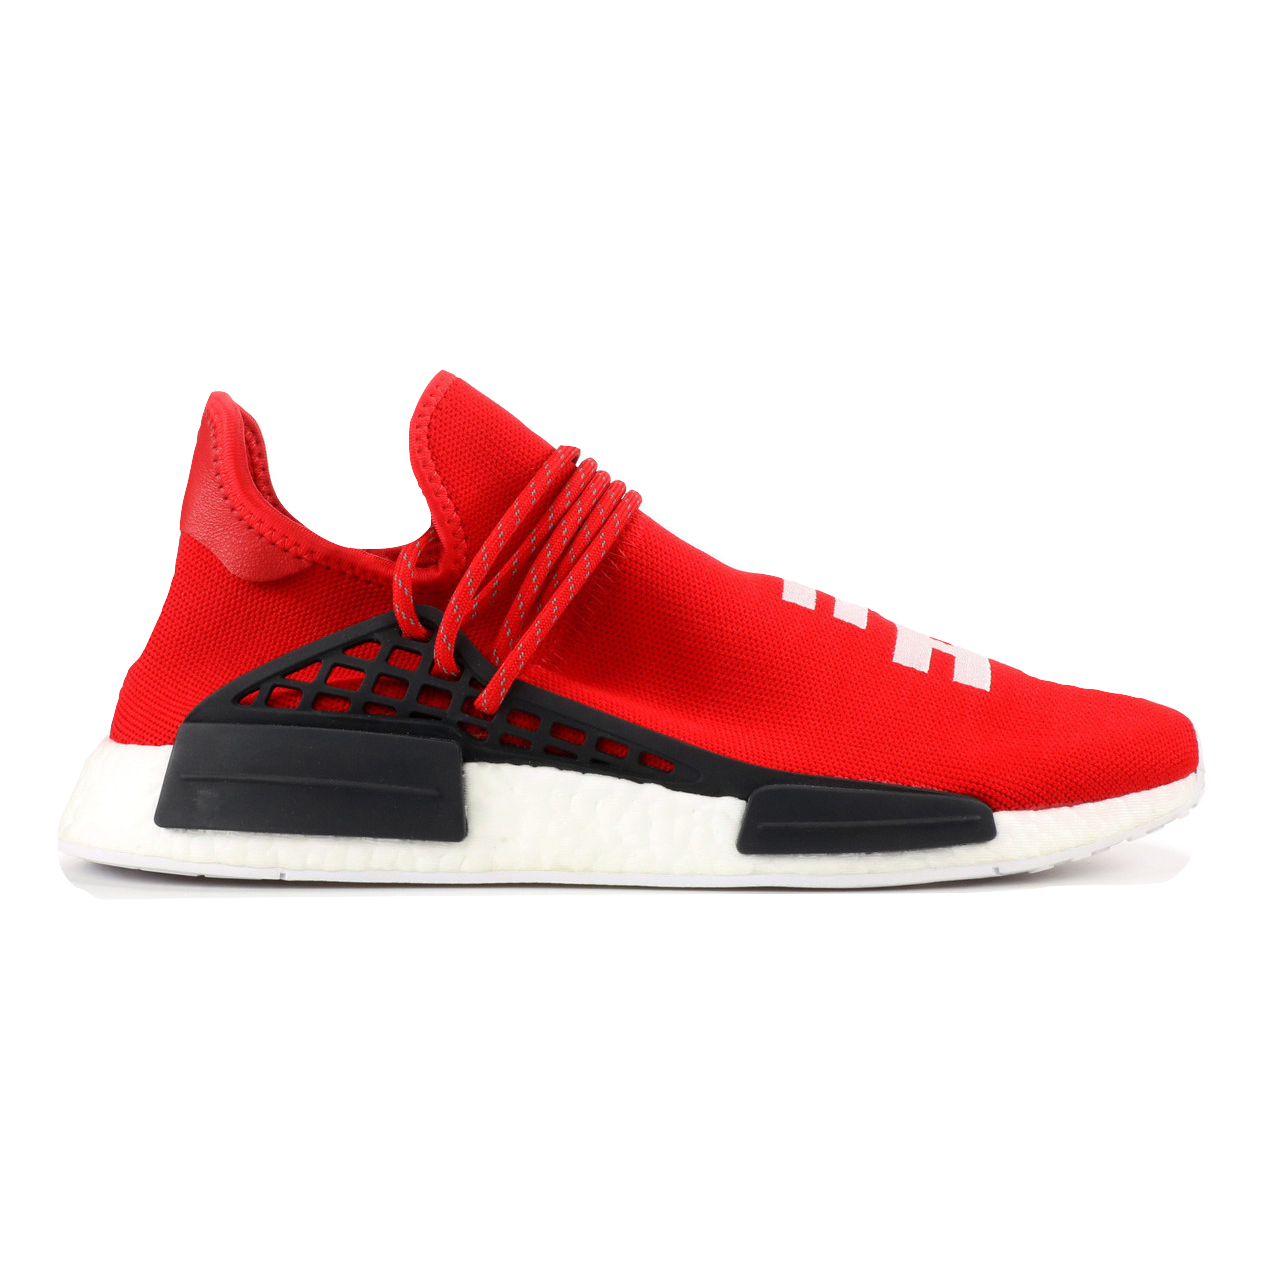 PW Human Race NMD - Red